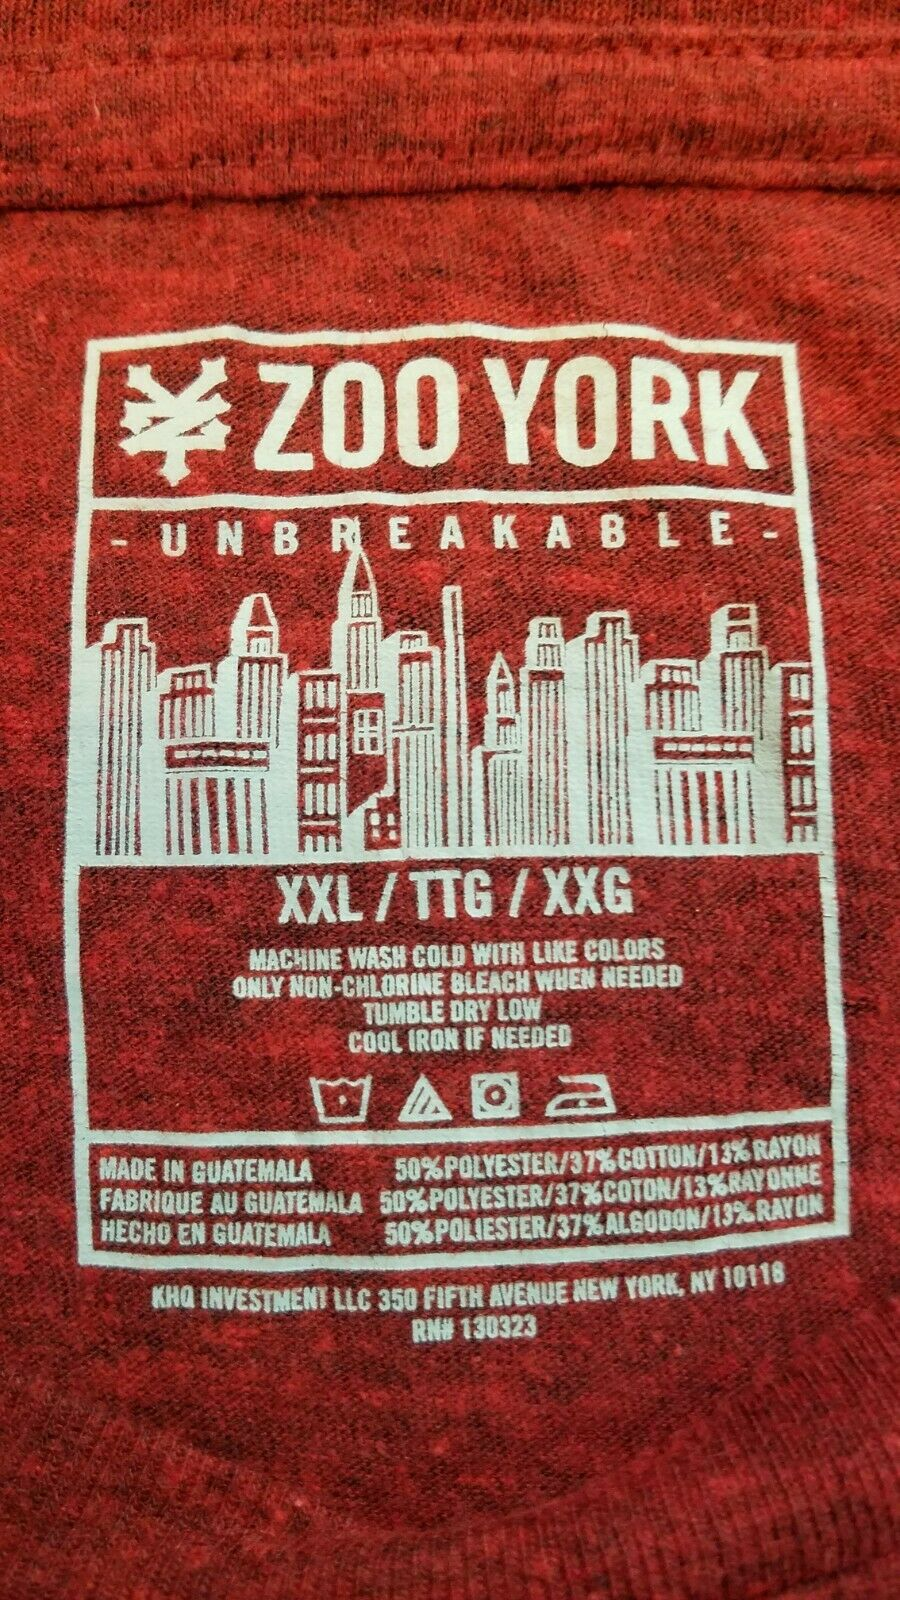 Unbreakable City Zoo York New York Shirt White XXL New in Package w// tags